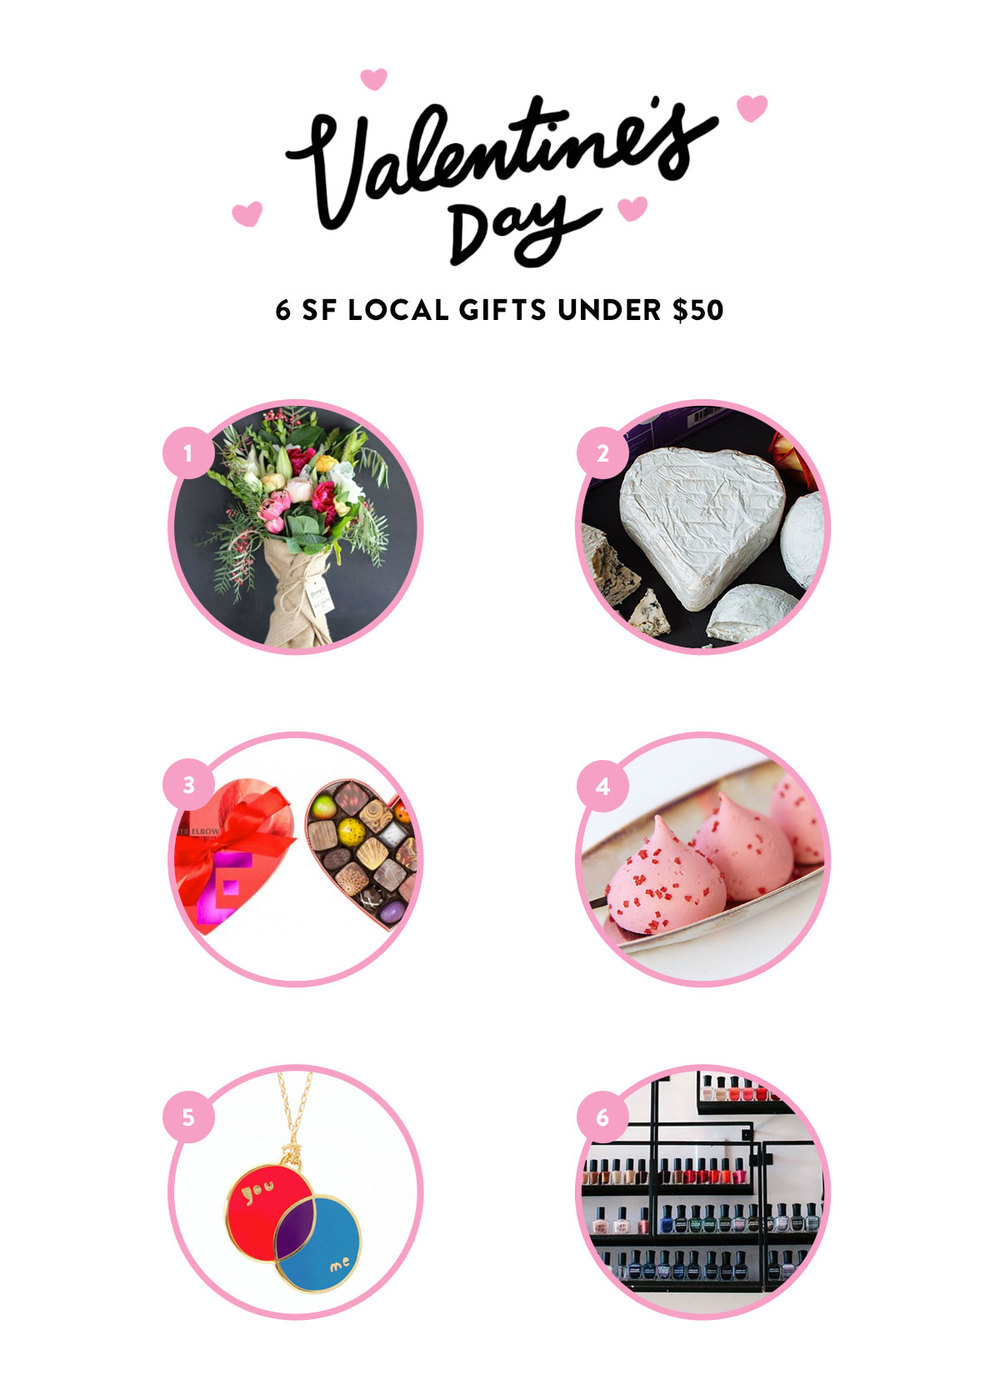 Valentine's Day: 6 SF Local Gifts Under $50